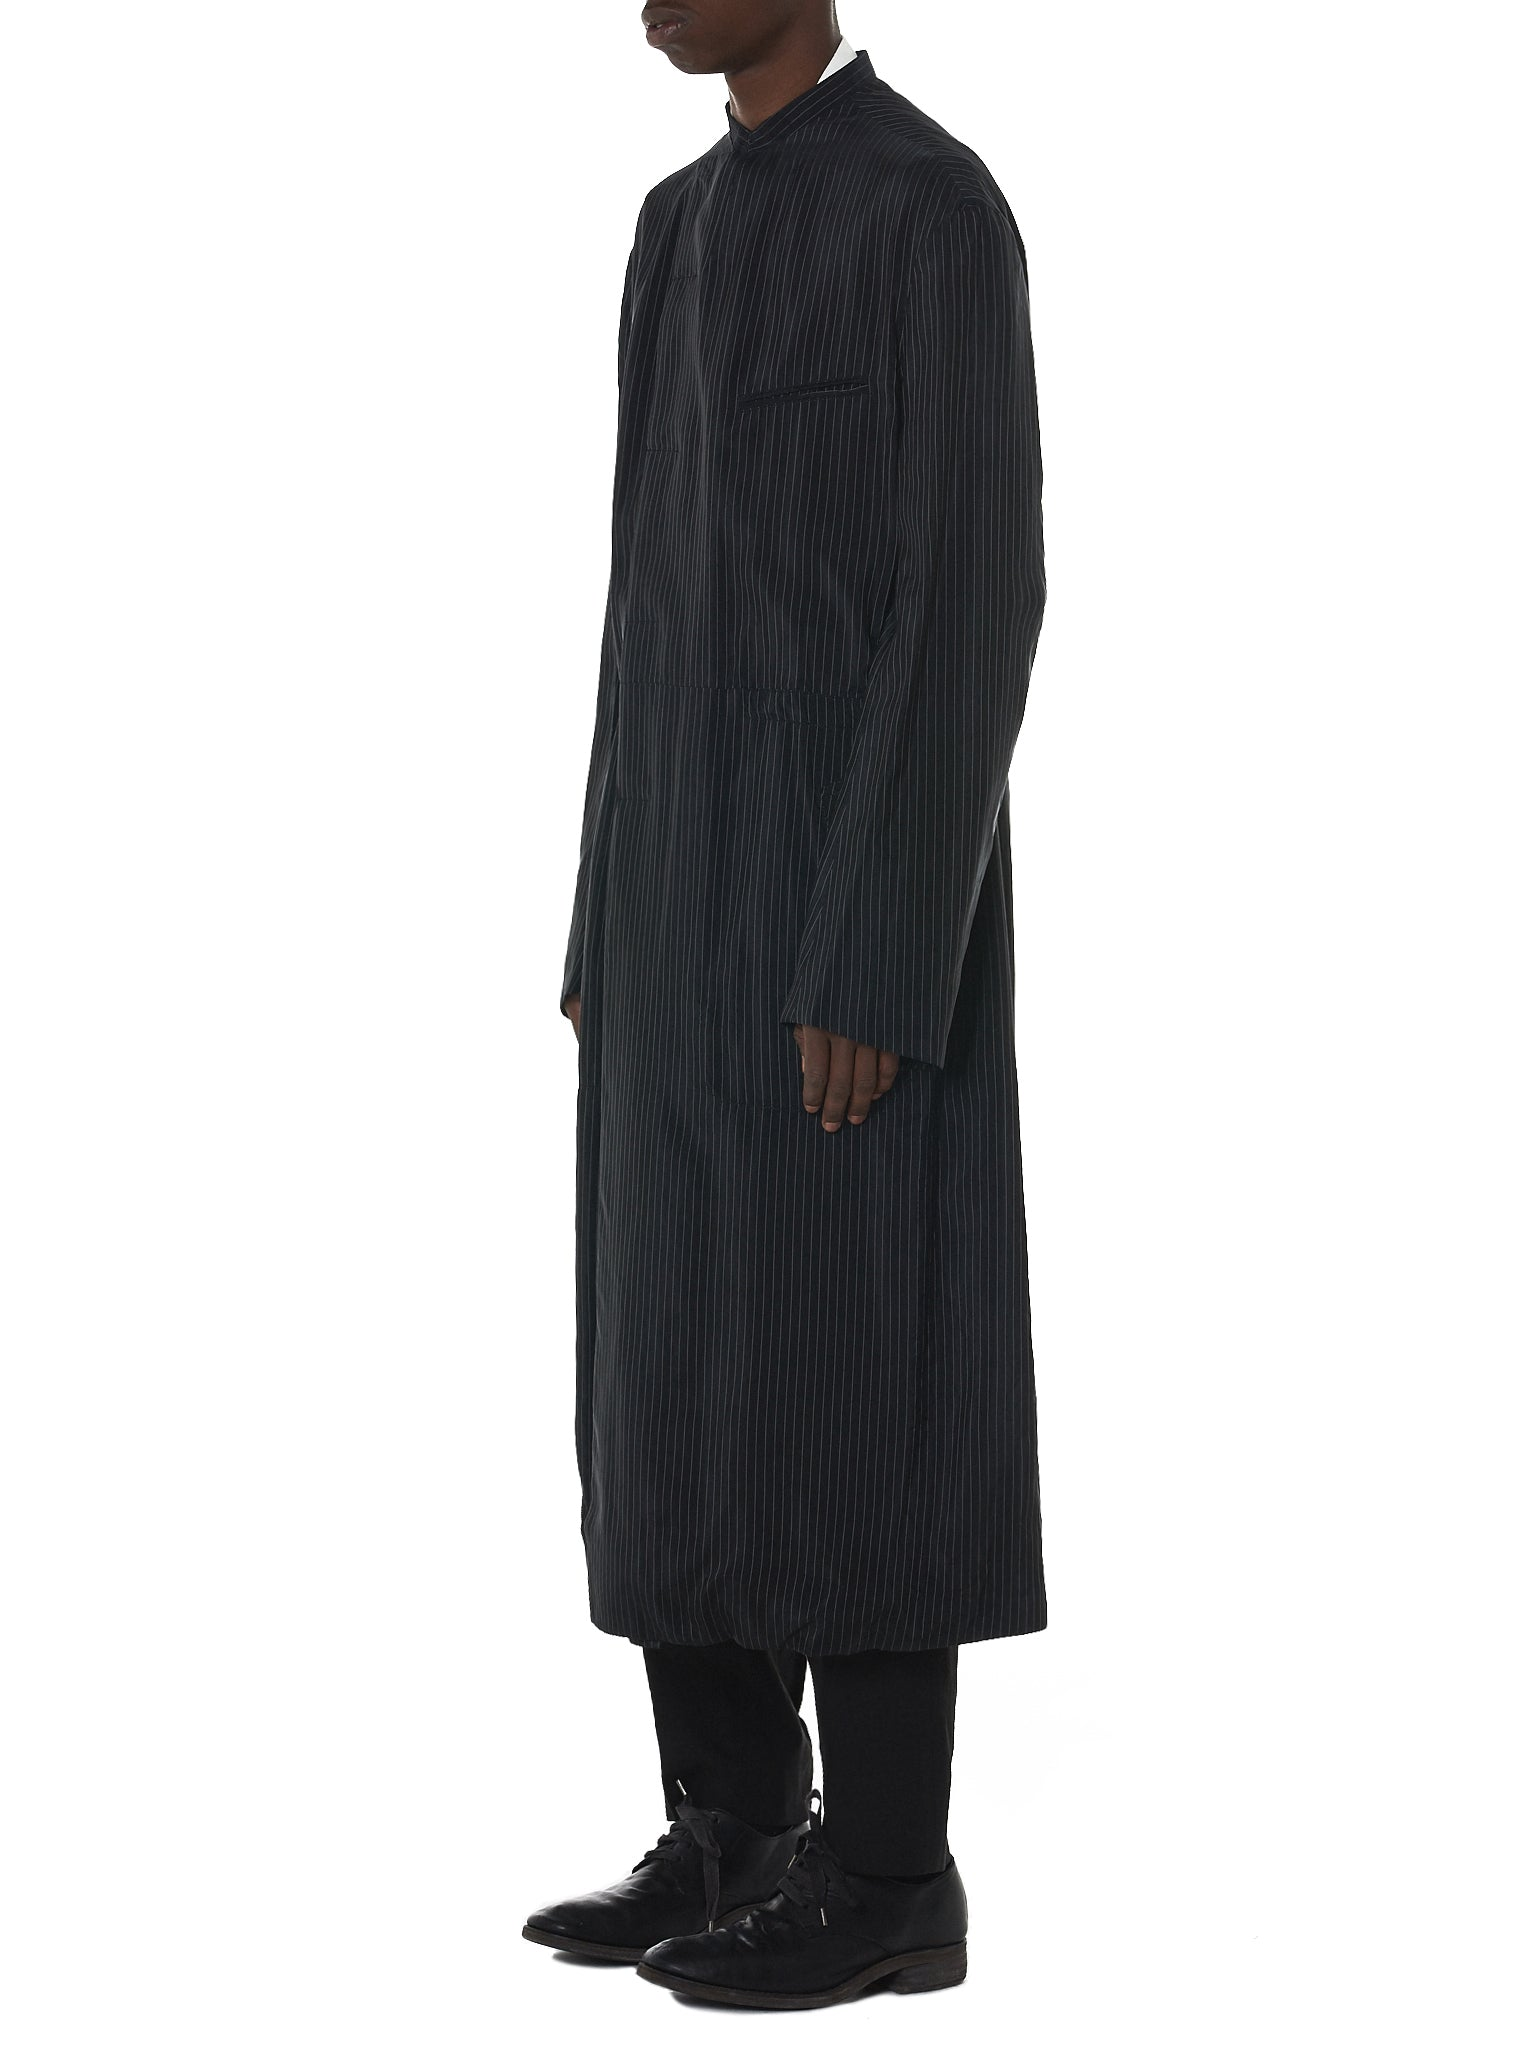 Haider Ackermann Pinstripe Coat - Hlorenzo Side